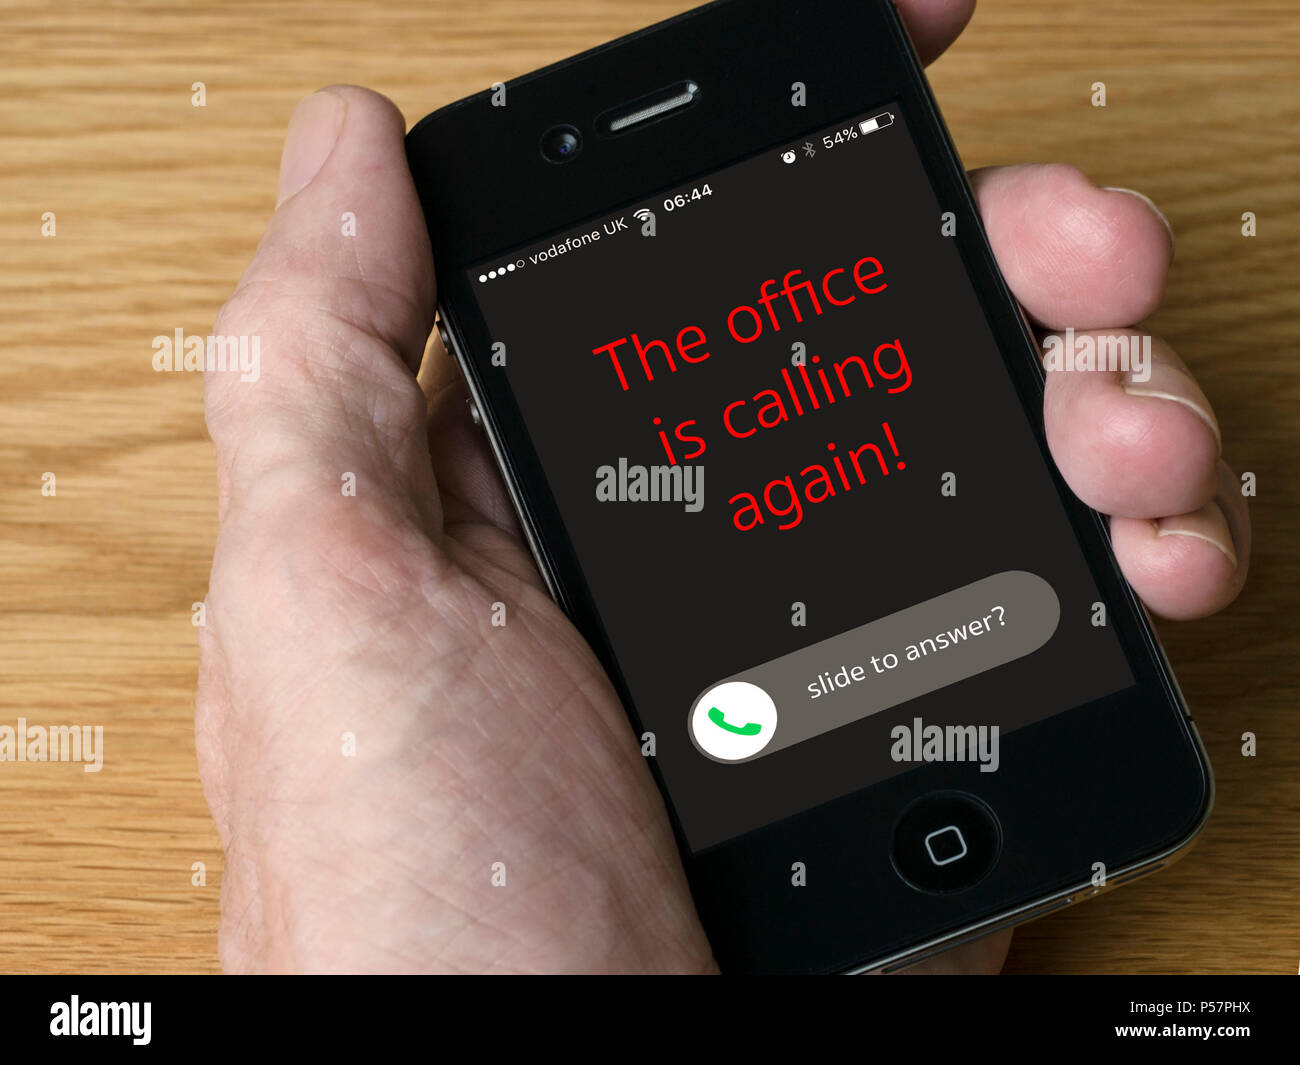 Concept image - incoming phonecall from the office illustrating modern pressures on work life balance, the pressure of work, or stress of work - Stock Image